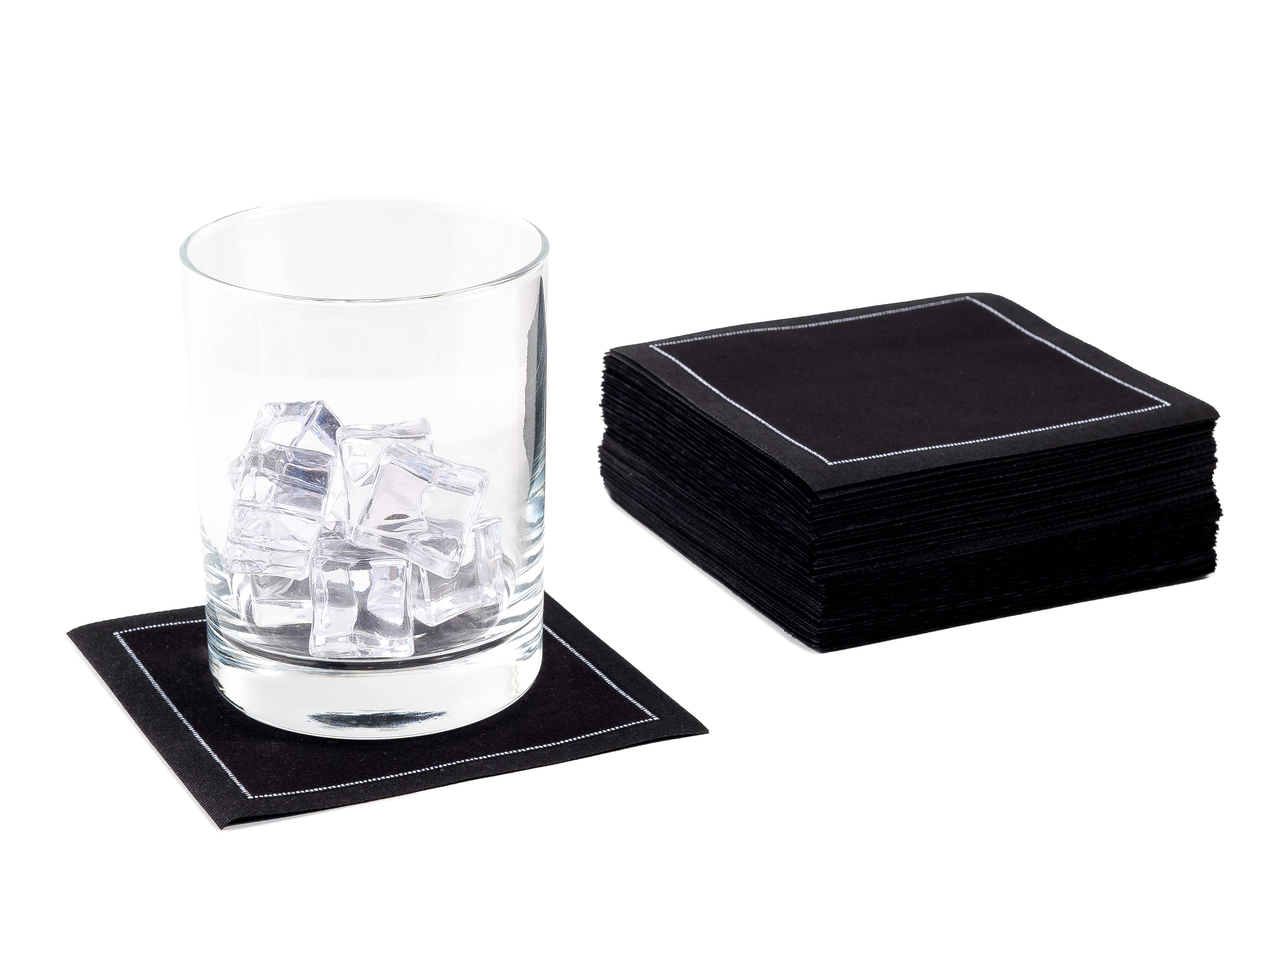 "Black Cotton Cocktail (200 GSM) - 4.5"" x 4.5"" - 1200 Units"